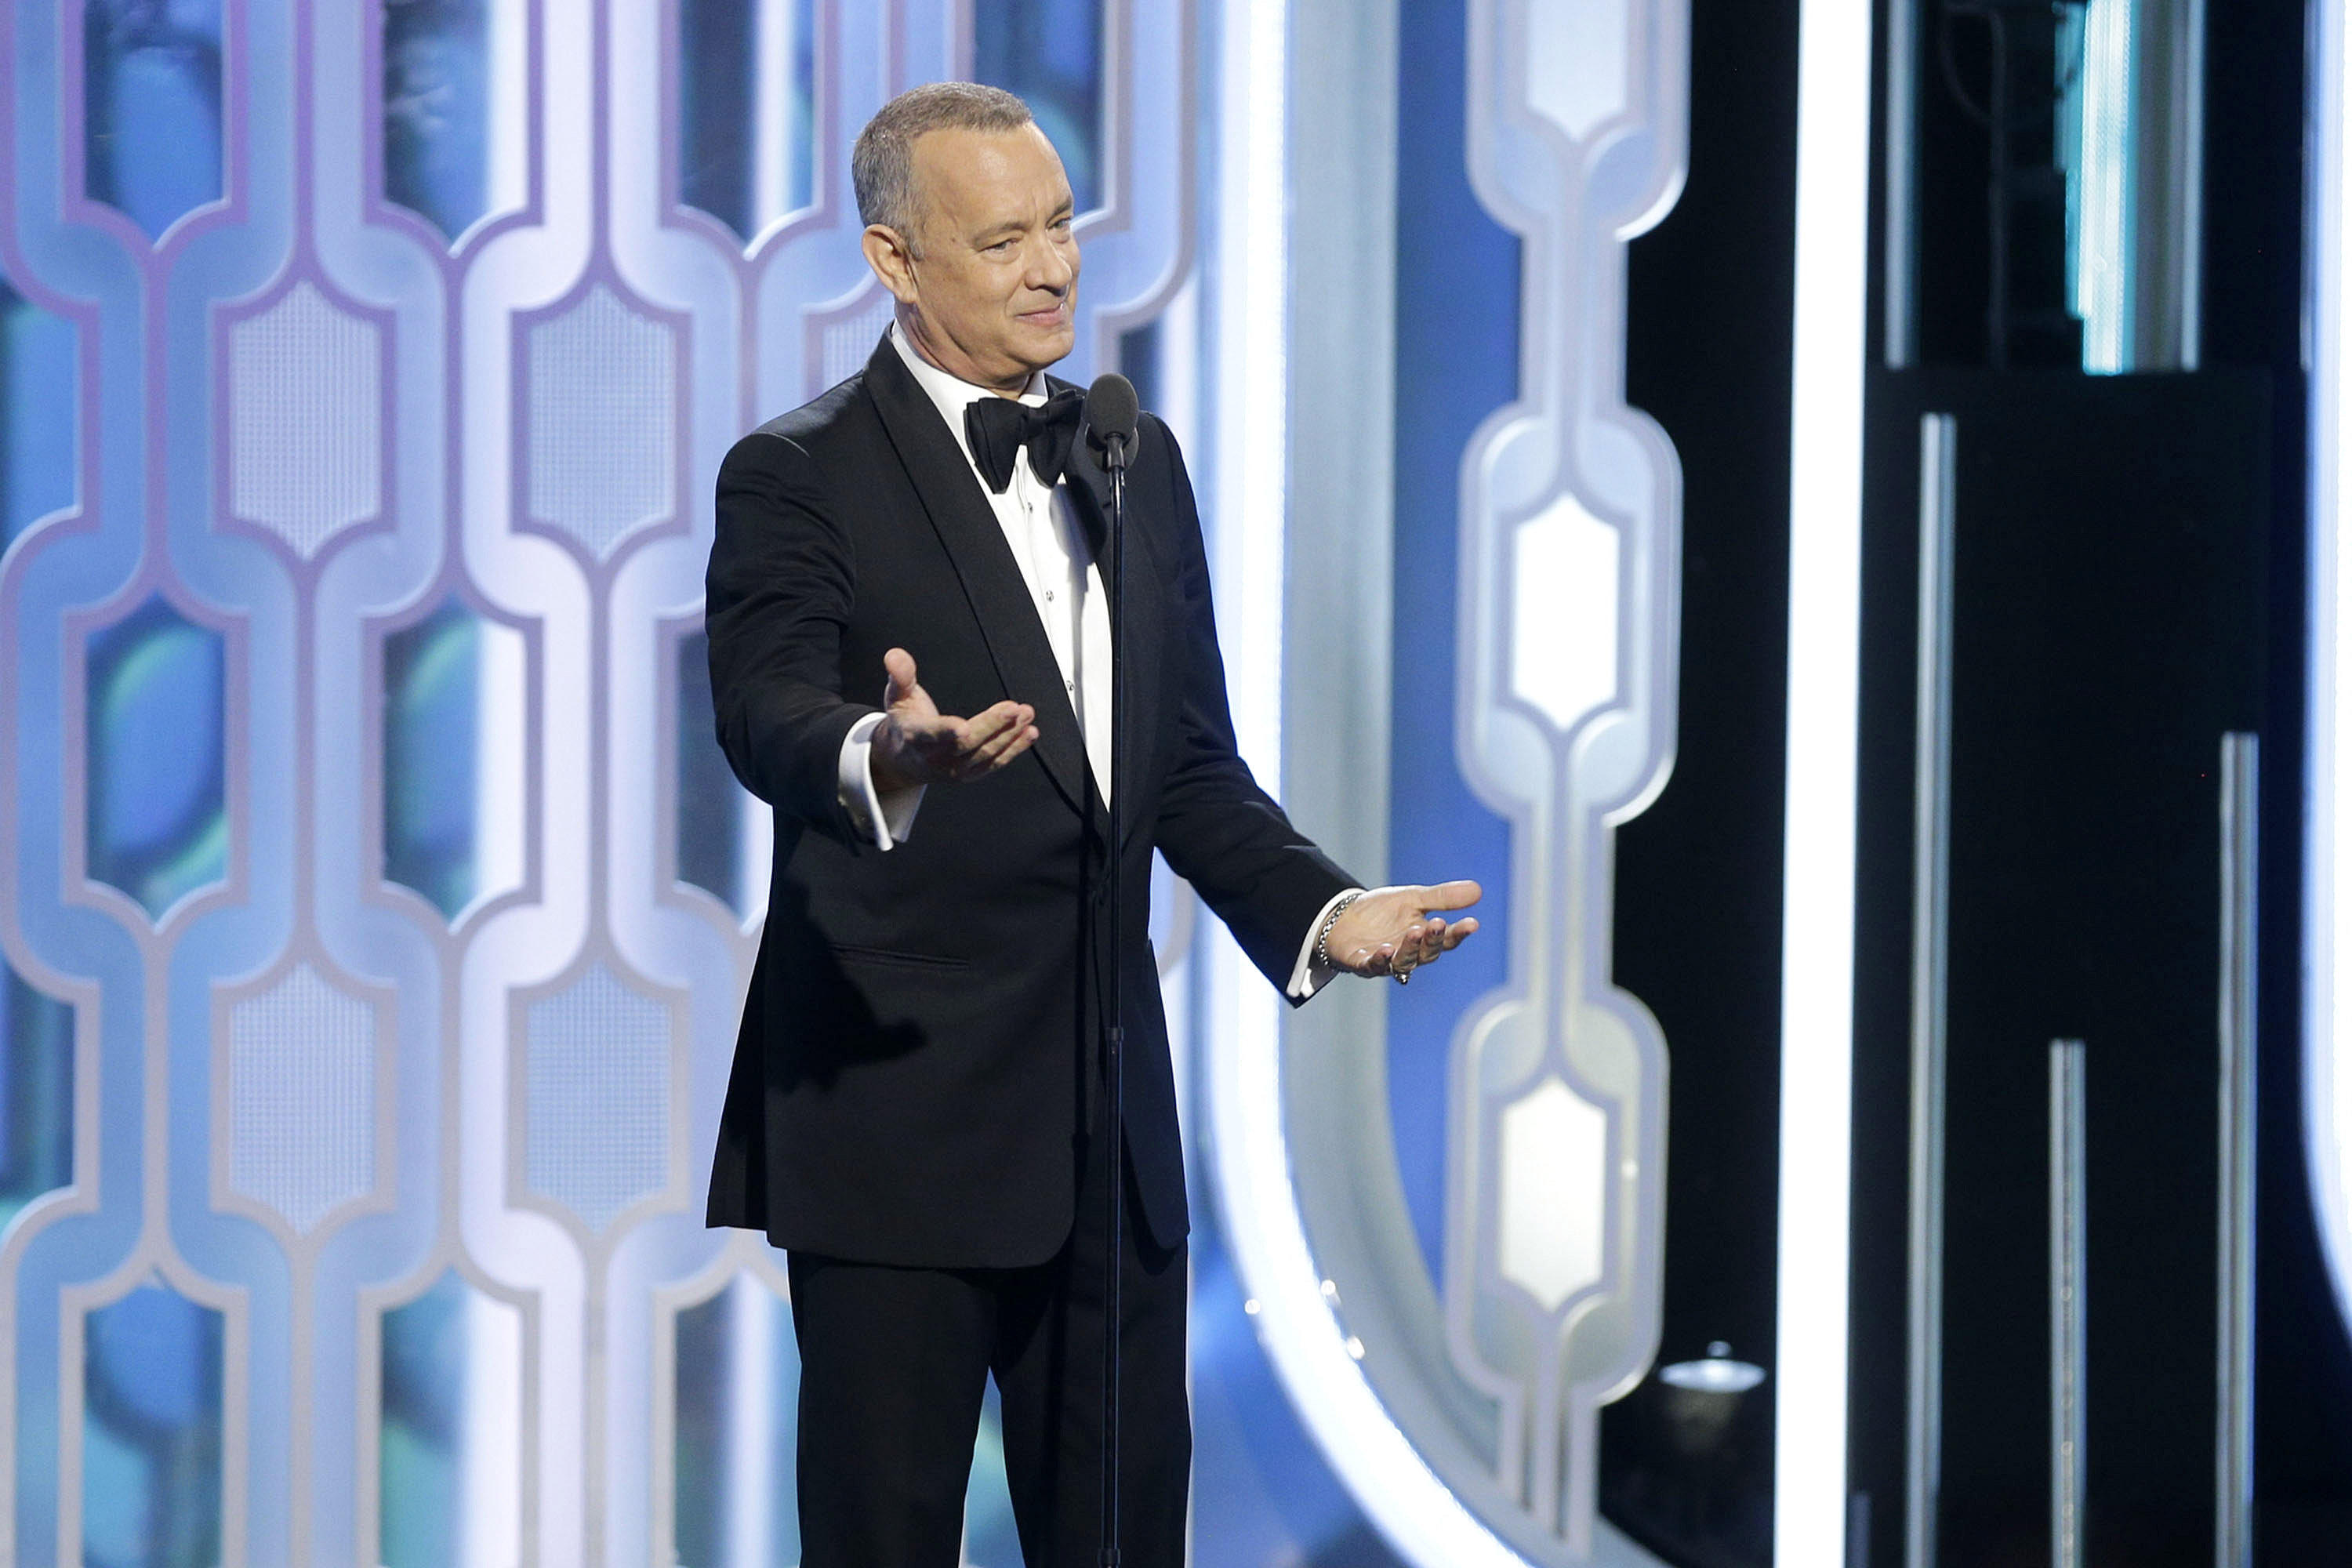 In this handout photo provided by NBCUniversal,  Presenter Tom Hanks speaks onstage during the 73rd Annual Golden Globe Awards at The Beverly Hilton Hotel on Jan. 10, 2016 in Beverly Hills, California.